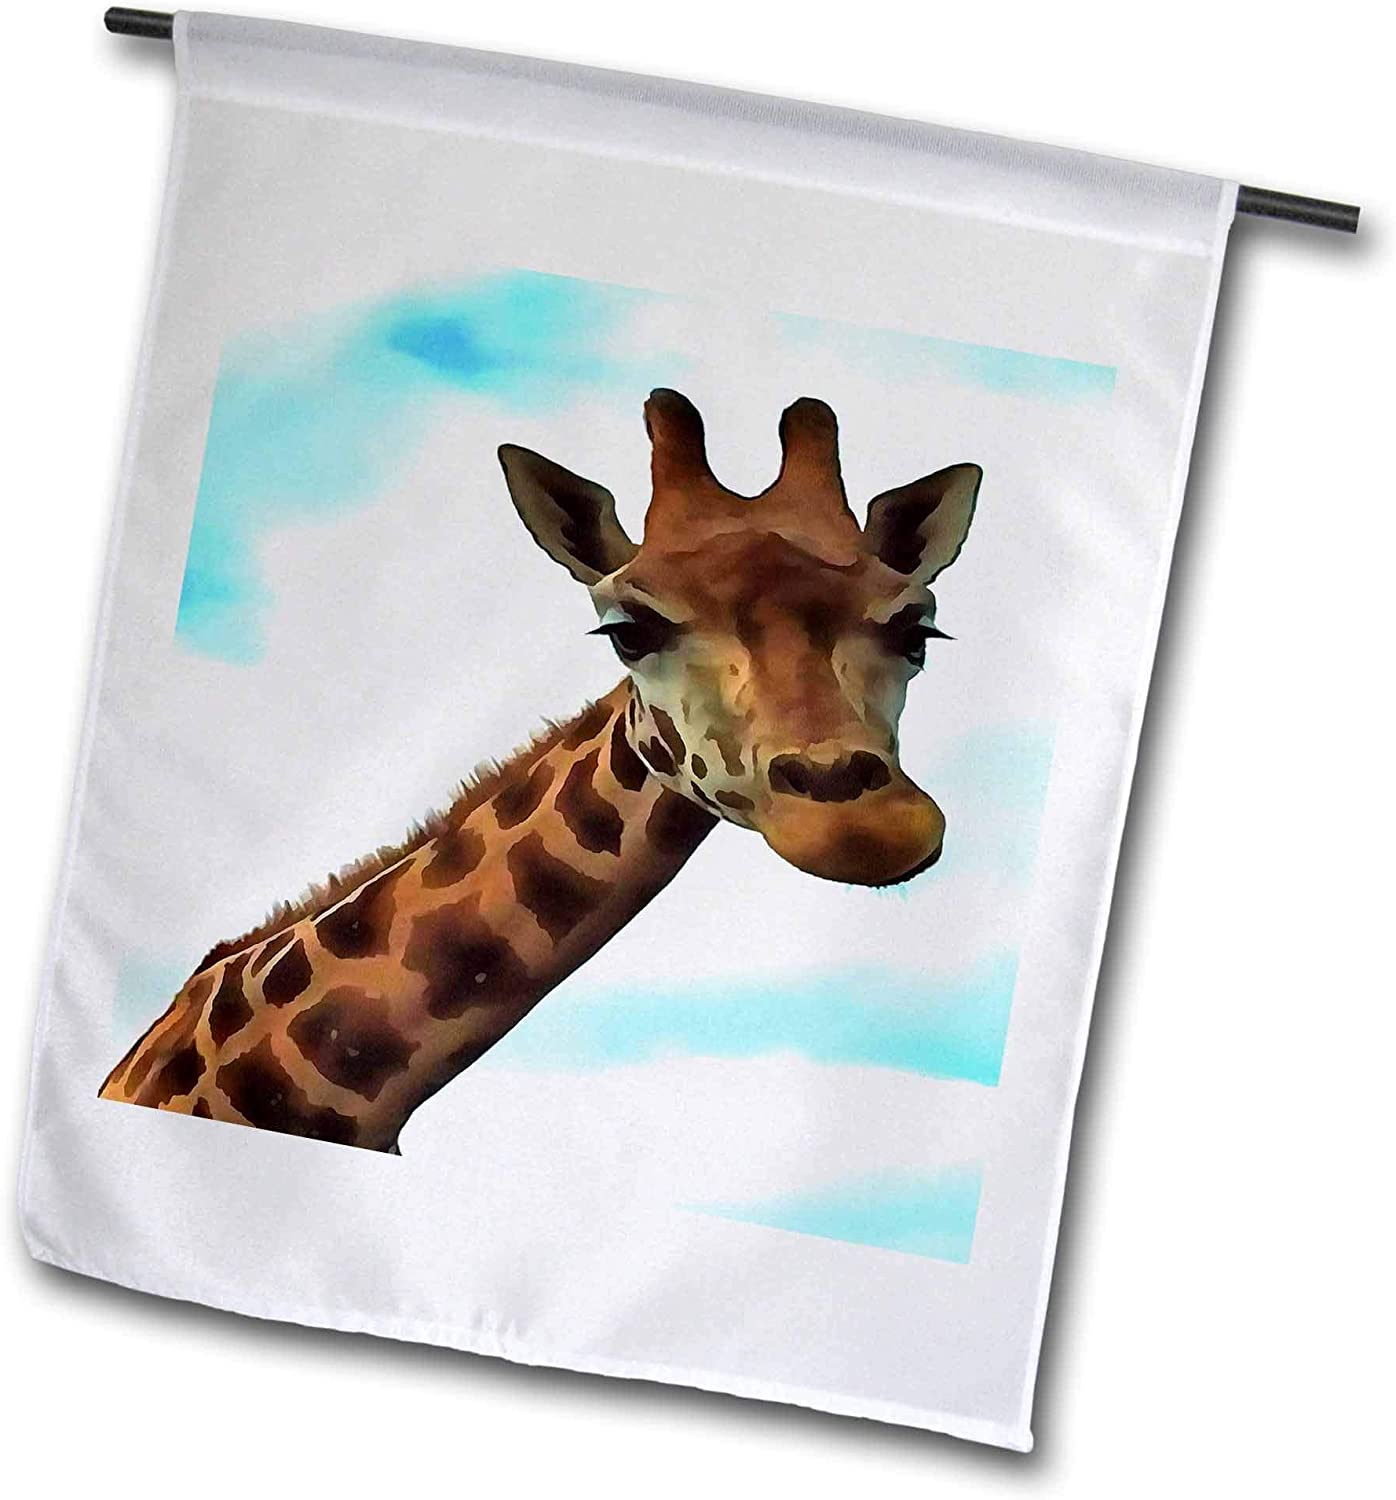 3dRose Taiche - Acrylic Painting - Giraffe - Hello Up There Fun Giraffe with Nerdy Expression - 12 x 18 inch Garden Flag (fl_299357_1)